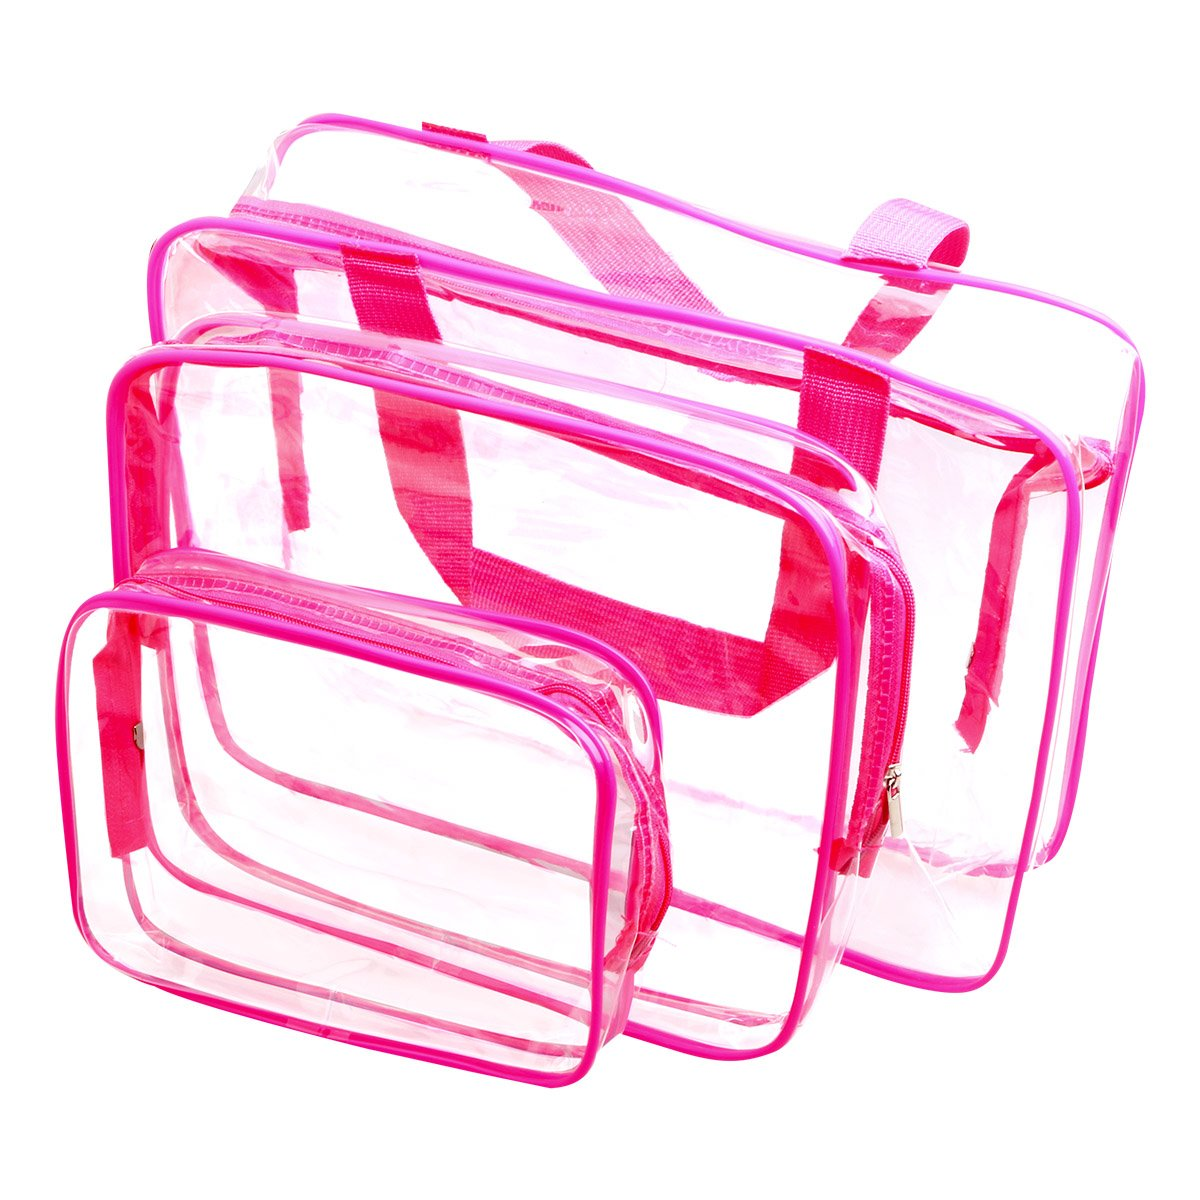 WIFUME 3 Set Clear Packing Cubes, PVC Waterproof Multi-function Hand Pouch Tote Bag Makeup Bag with Zipper and Travel to Buggy Bag for Toiletries Cosmetic and Bathroom Accessories Red